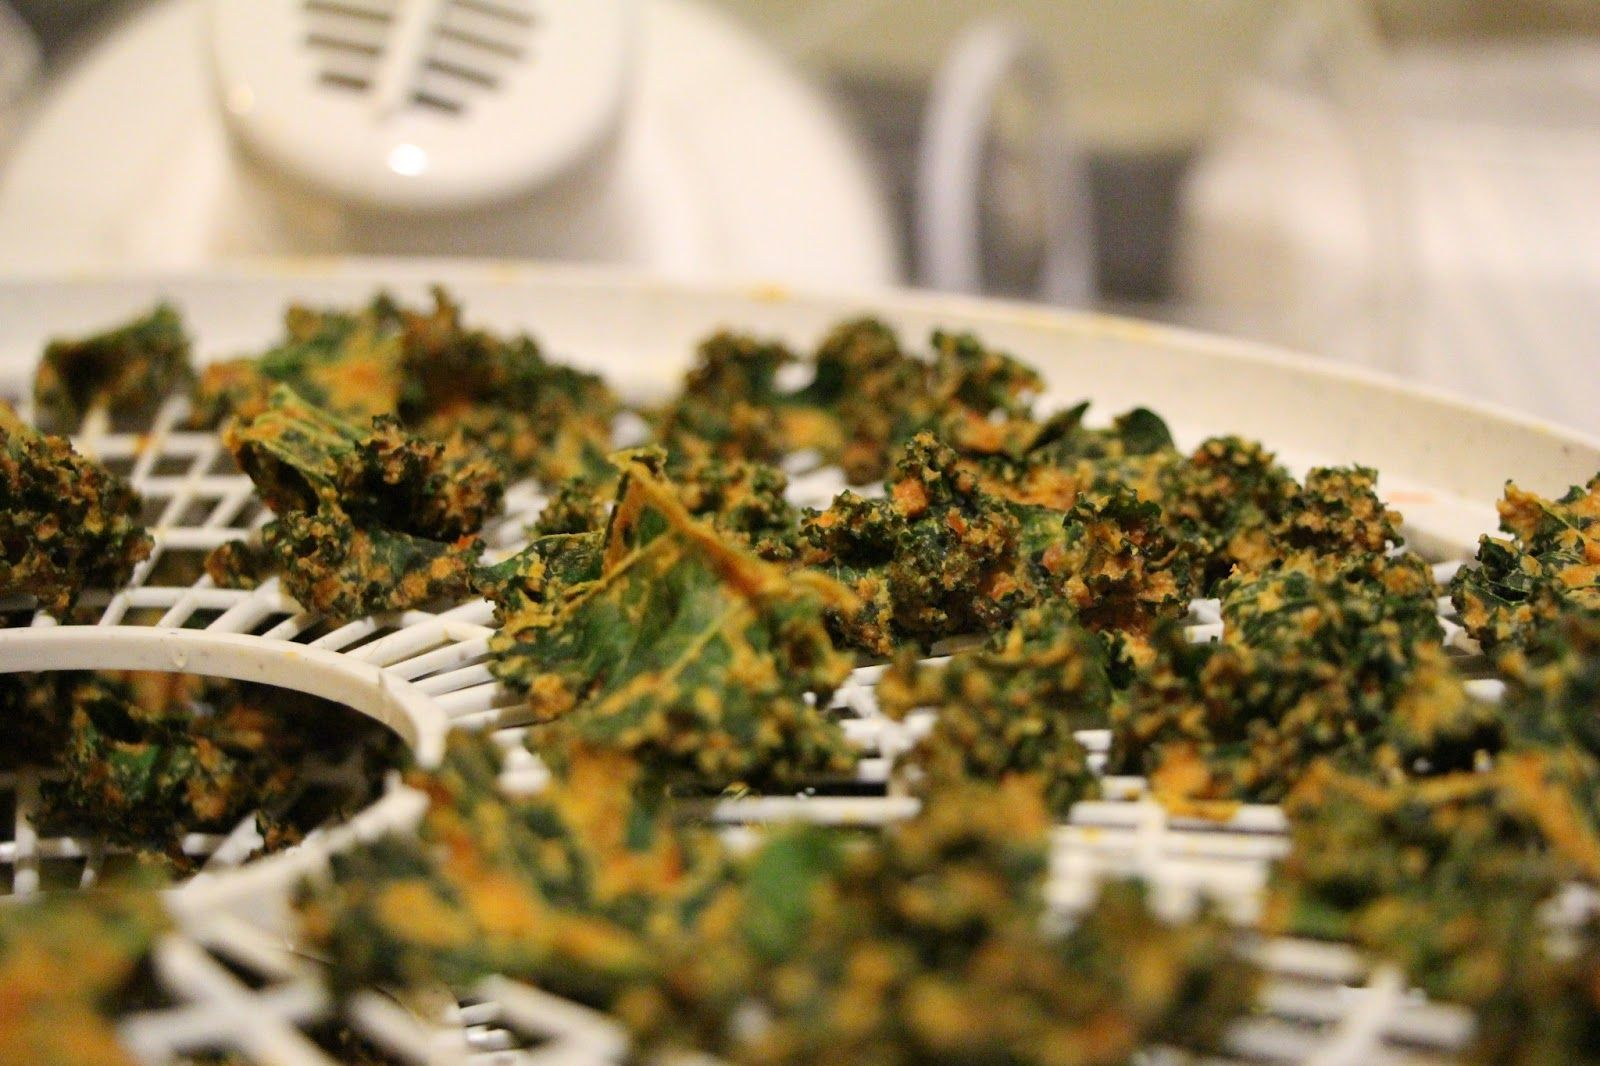 Spice and Simplify: Kale chips (oven or dehydrator)